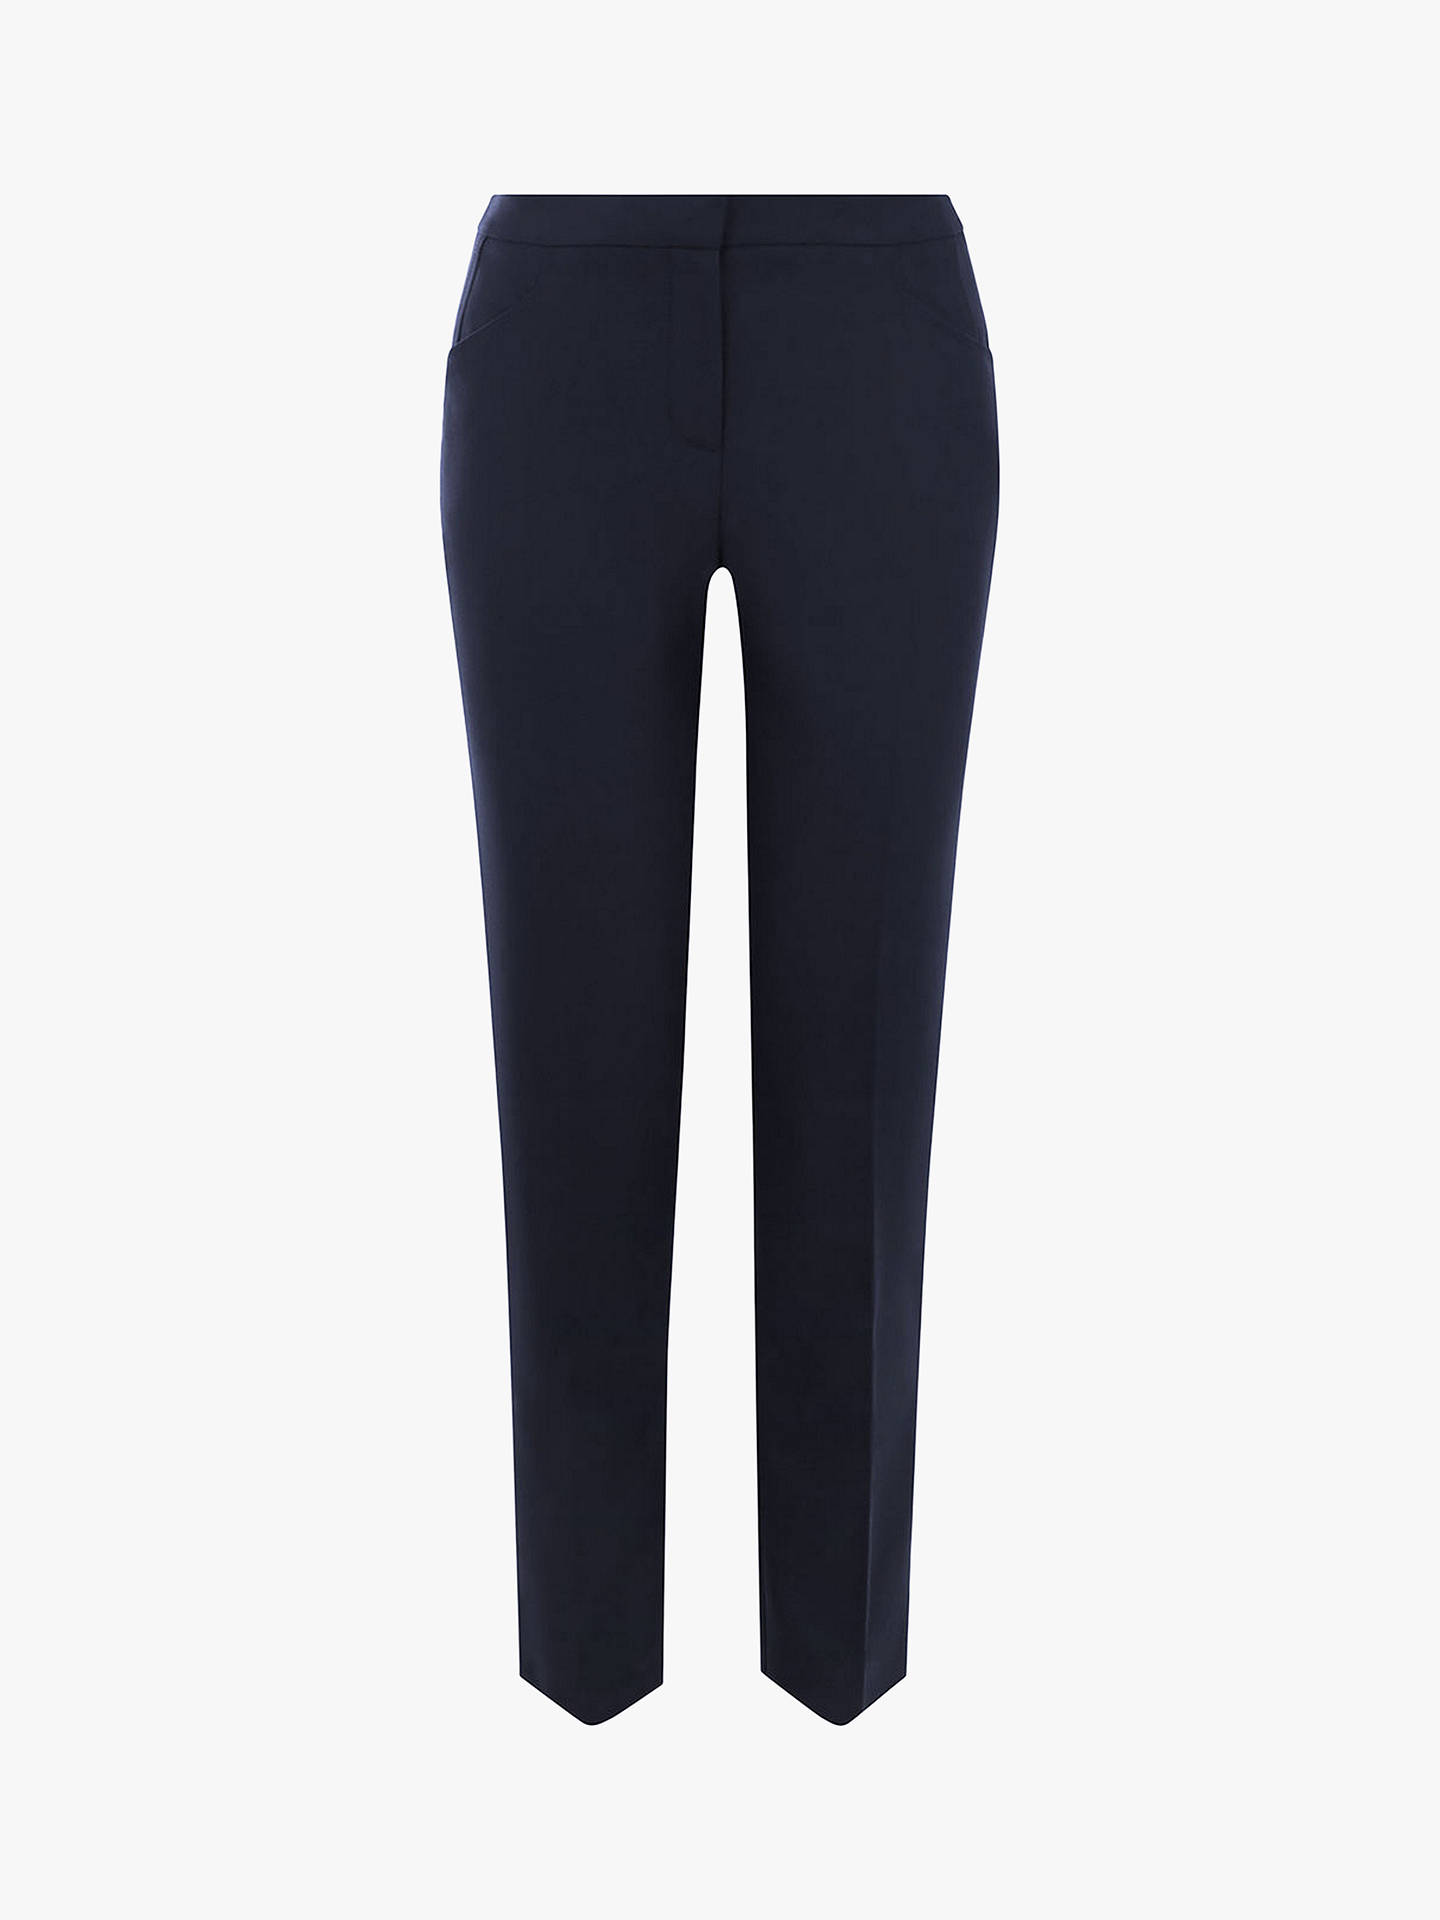 BuyOasis Workwear Trousers, Navy, 6 Online at johnlewis.com